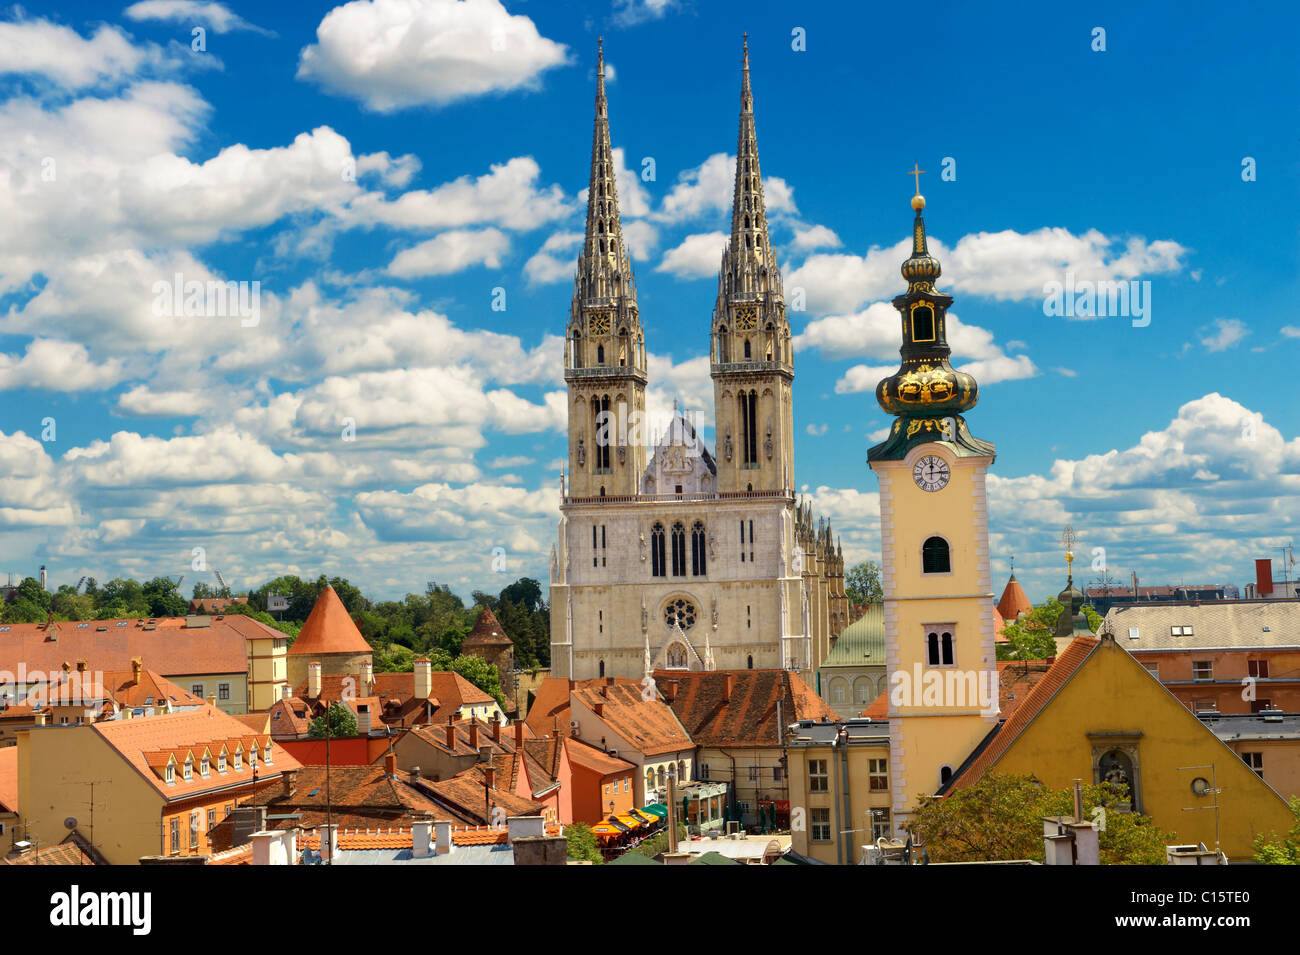 The Neo Gothic Cathedral of the Assumption of the Blessed Virgin Mary, Zagreb, Croatia Stock Photo